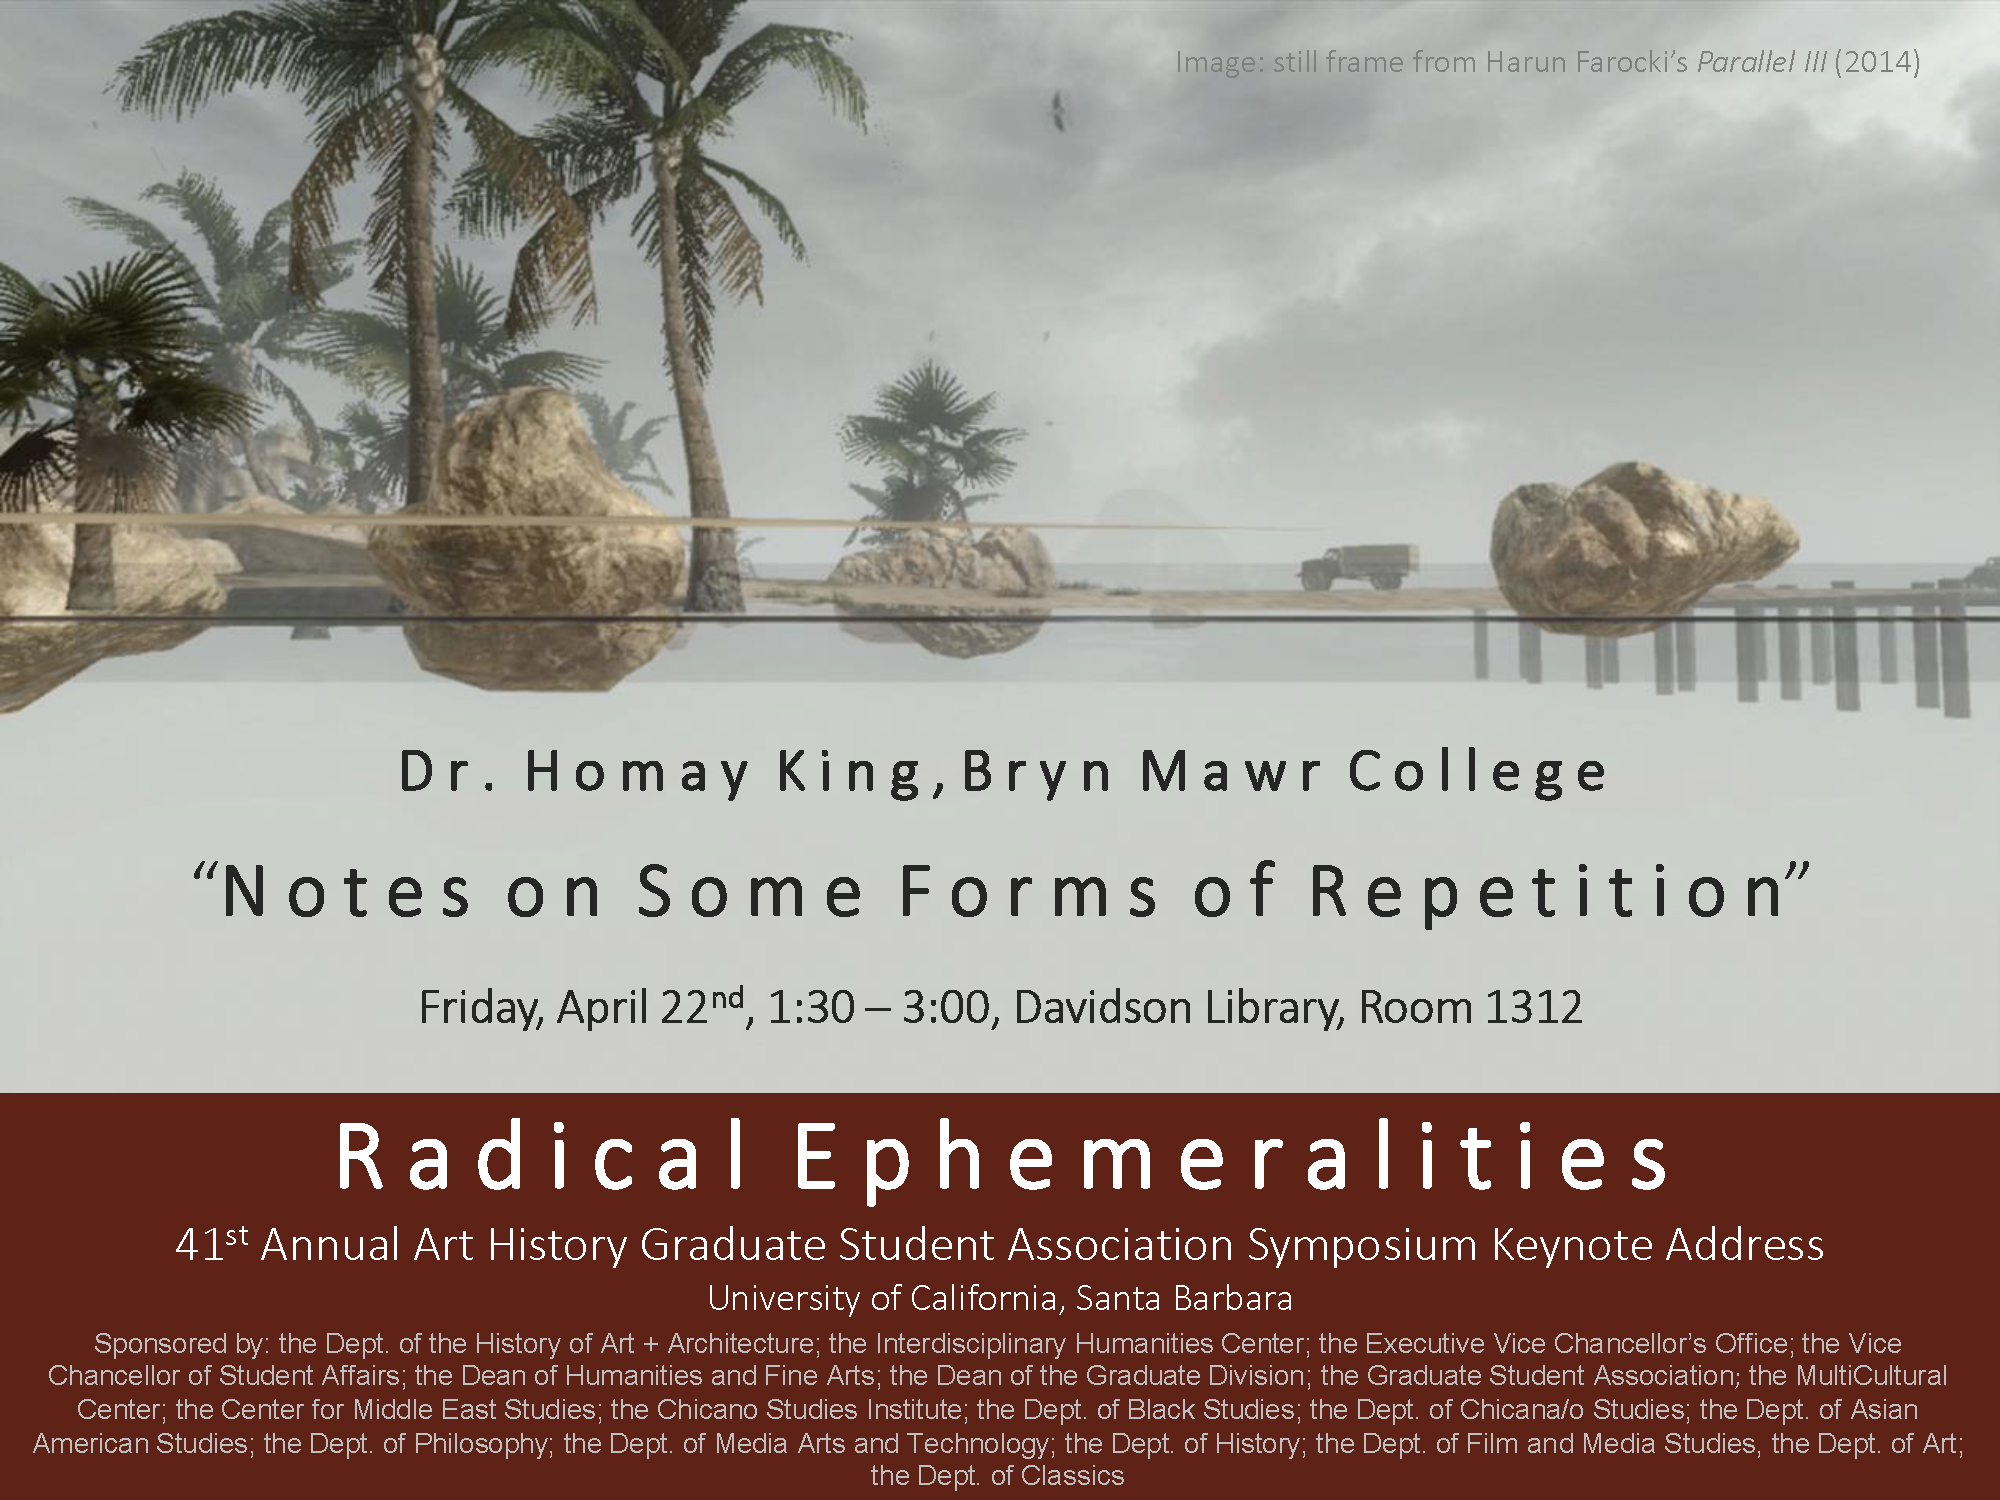 """Notes on Some Forms of Repetition,"" Homay King (Bryn Mawr College), Keynote Address for the Art History Graduate Student Association 41st Annual Symposium: Radical Ephemeralities (Image: Still frame from Harun Farocki's Parallel III, 2014)"